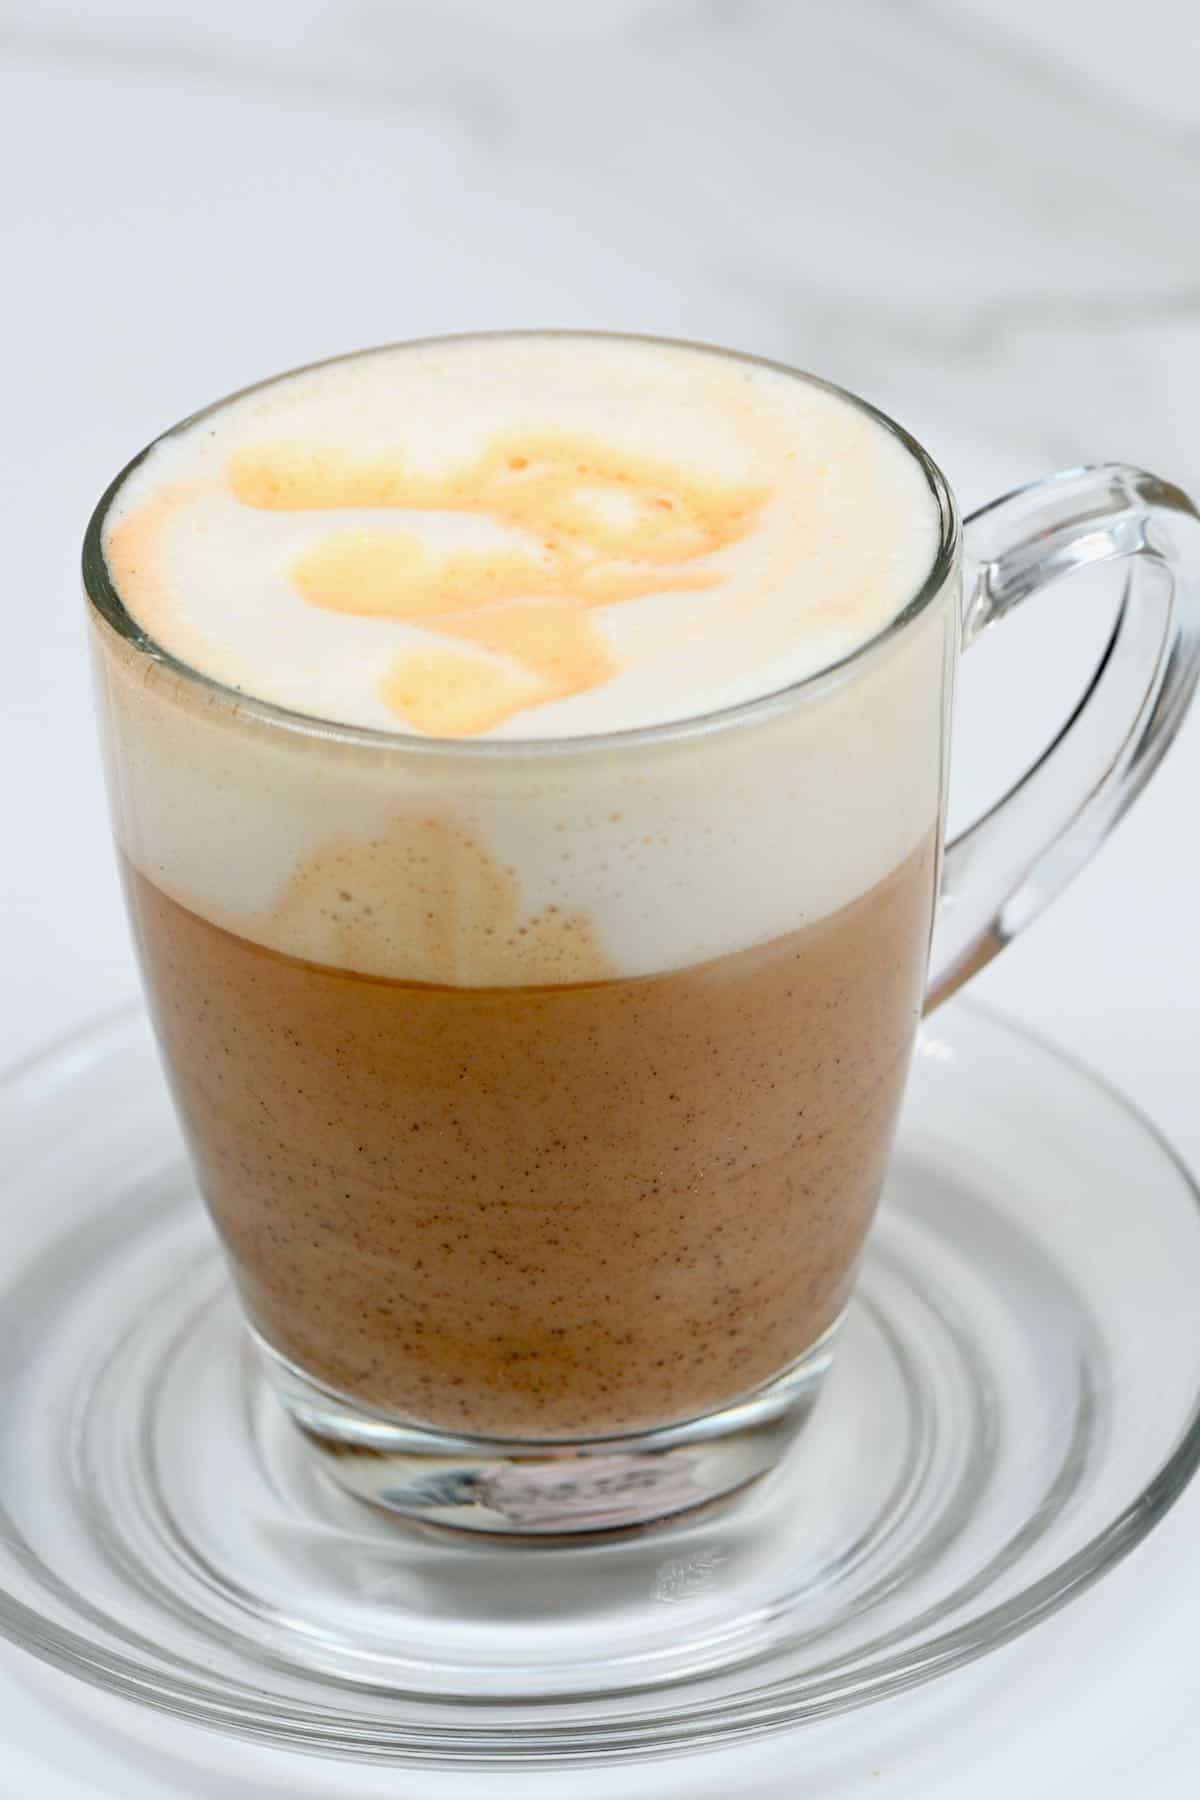 A cup of mushroom cafe latte